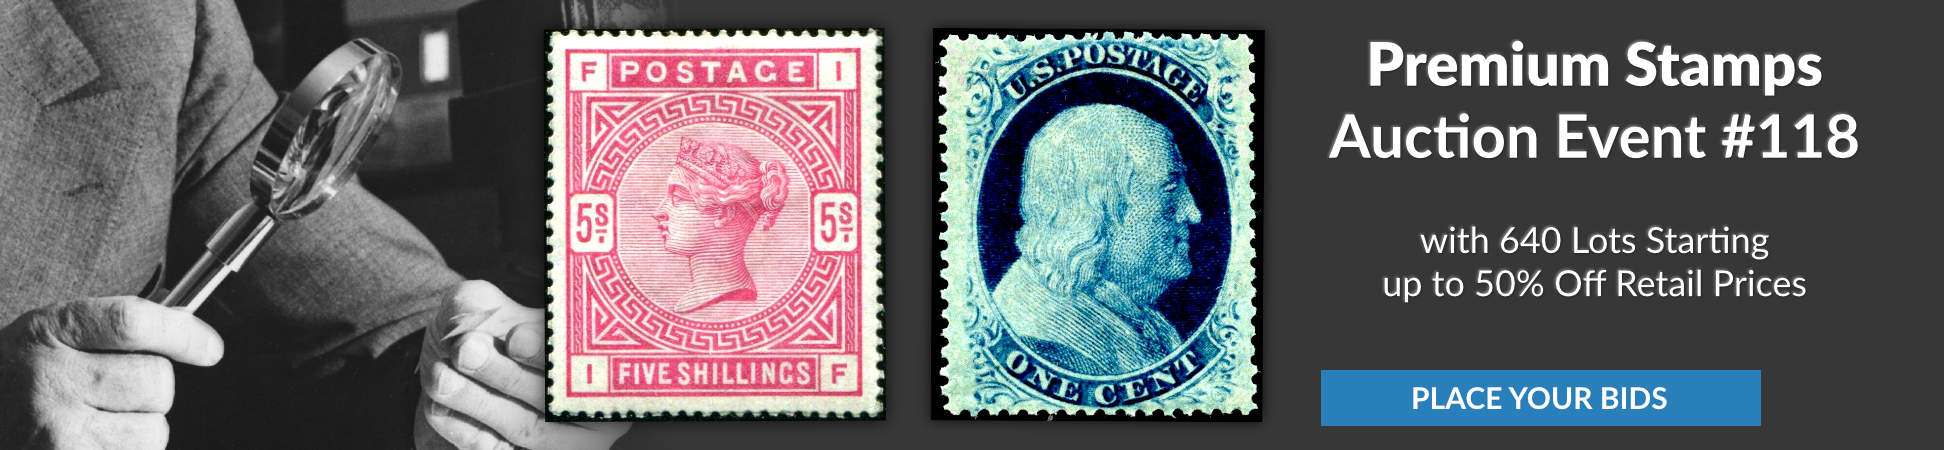 HipStamp - The Stamp Marketplace